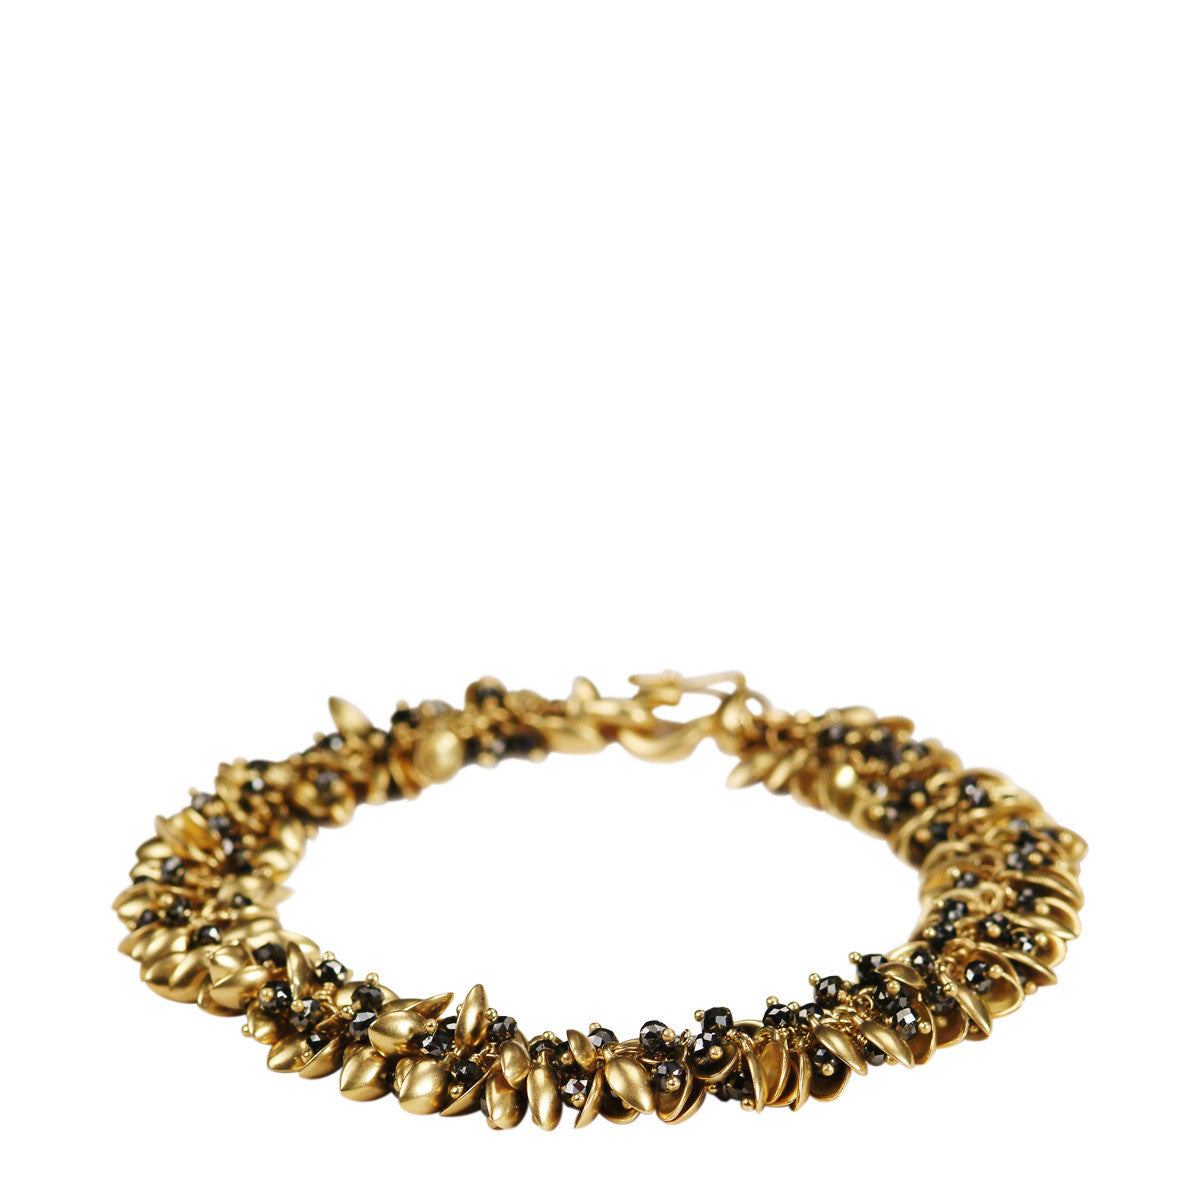 18K Gold Baby Pod Bracelet with Black Diamonds